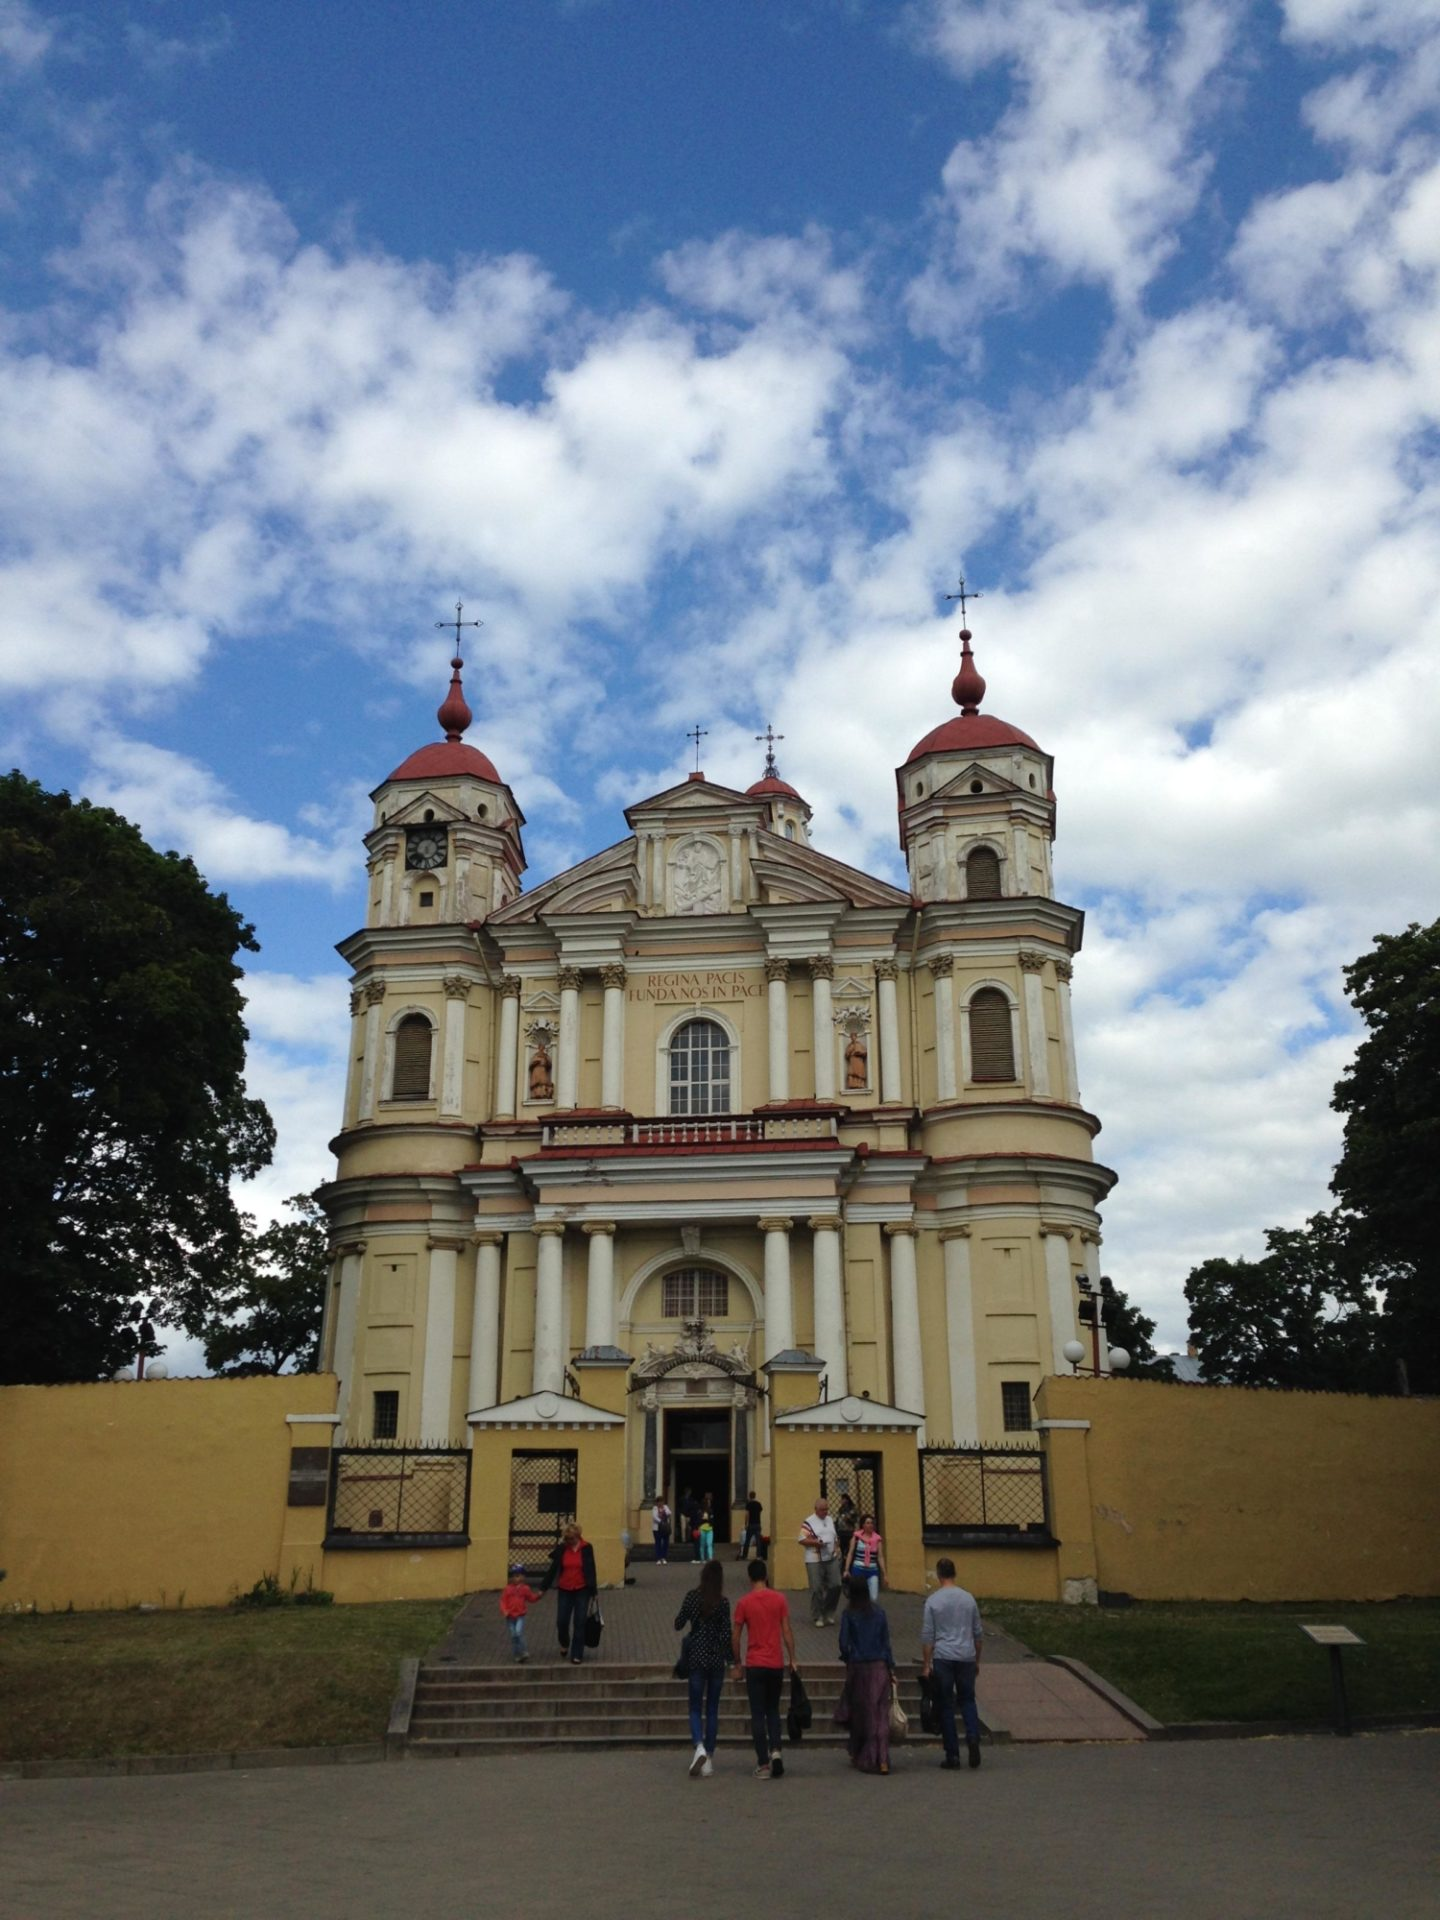 <p>The Church of Saints Peter and Paul<em> </em>in Vilnius where St. Paul&#8217;s Monastery once stood. Photo credit: Madeleine&nbsp;Cohen.</p>